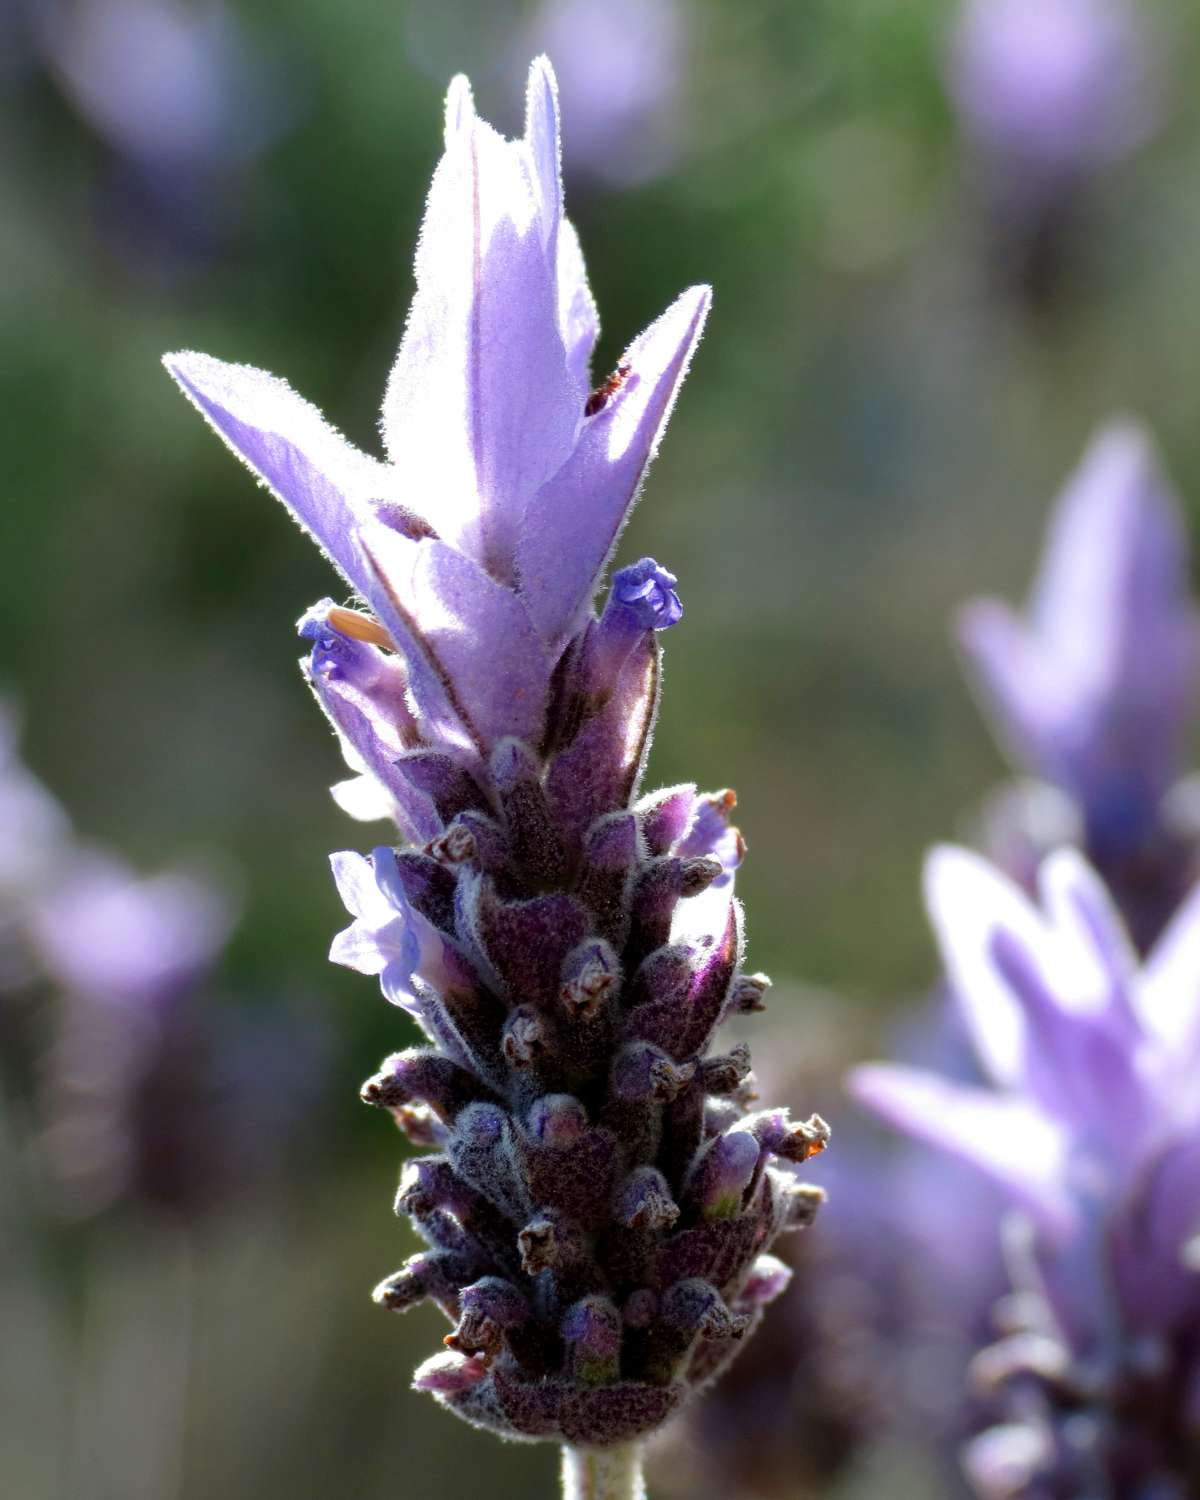 Flower blooming on French lavender